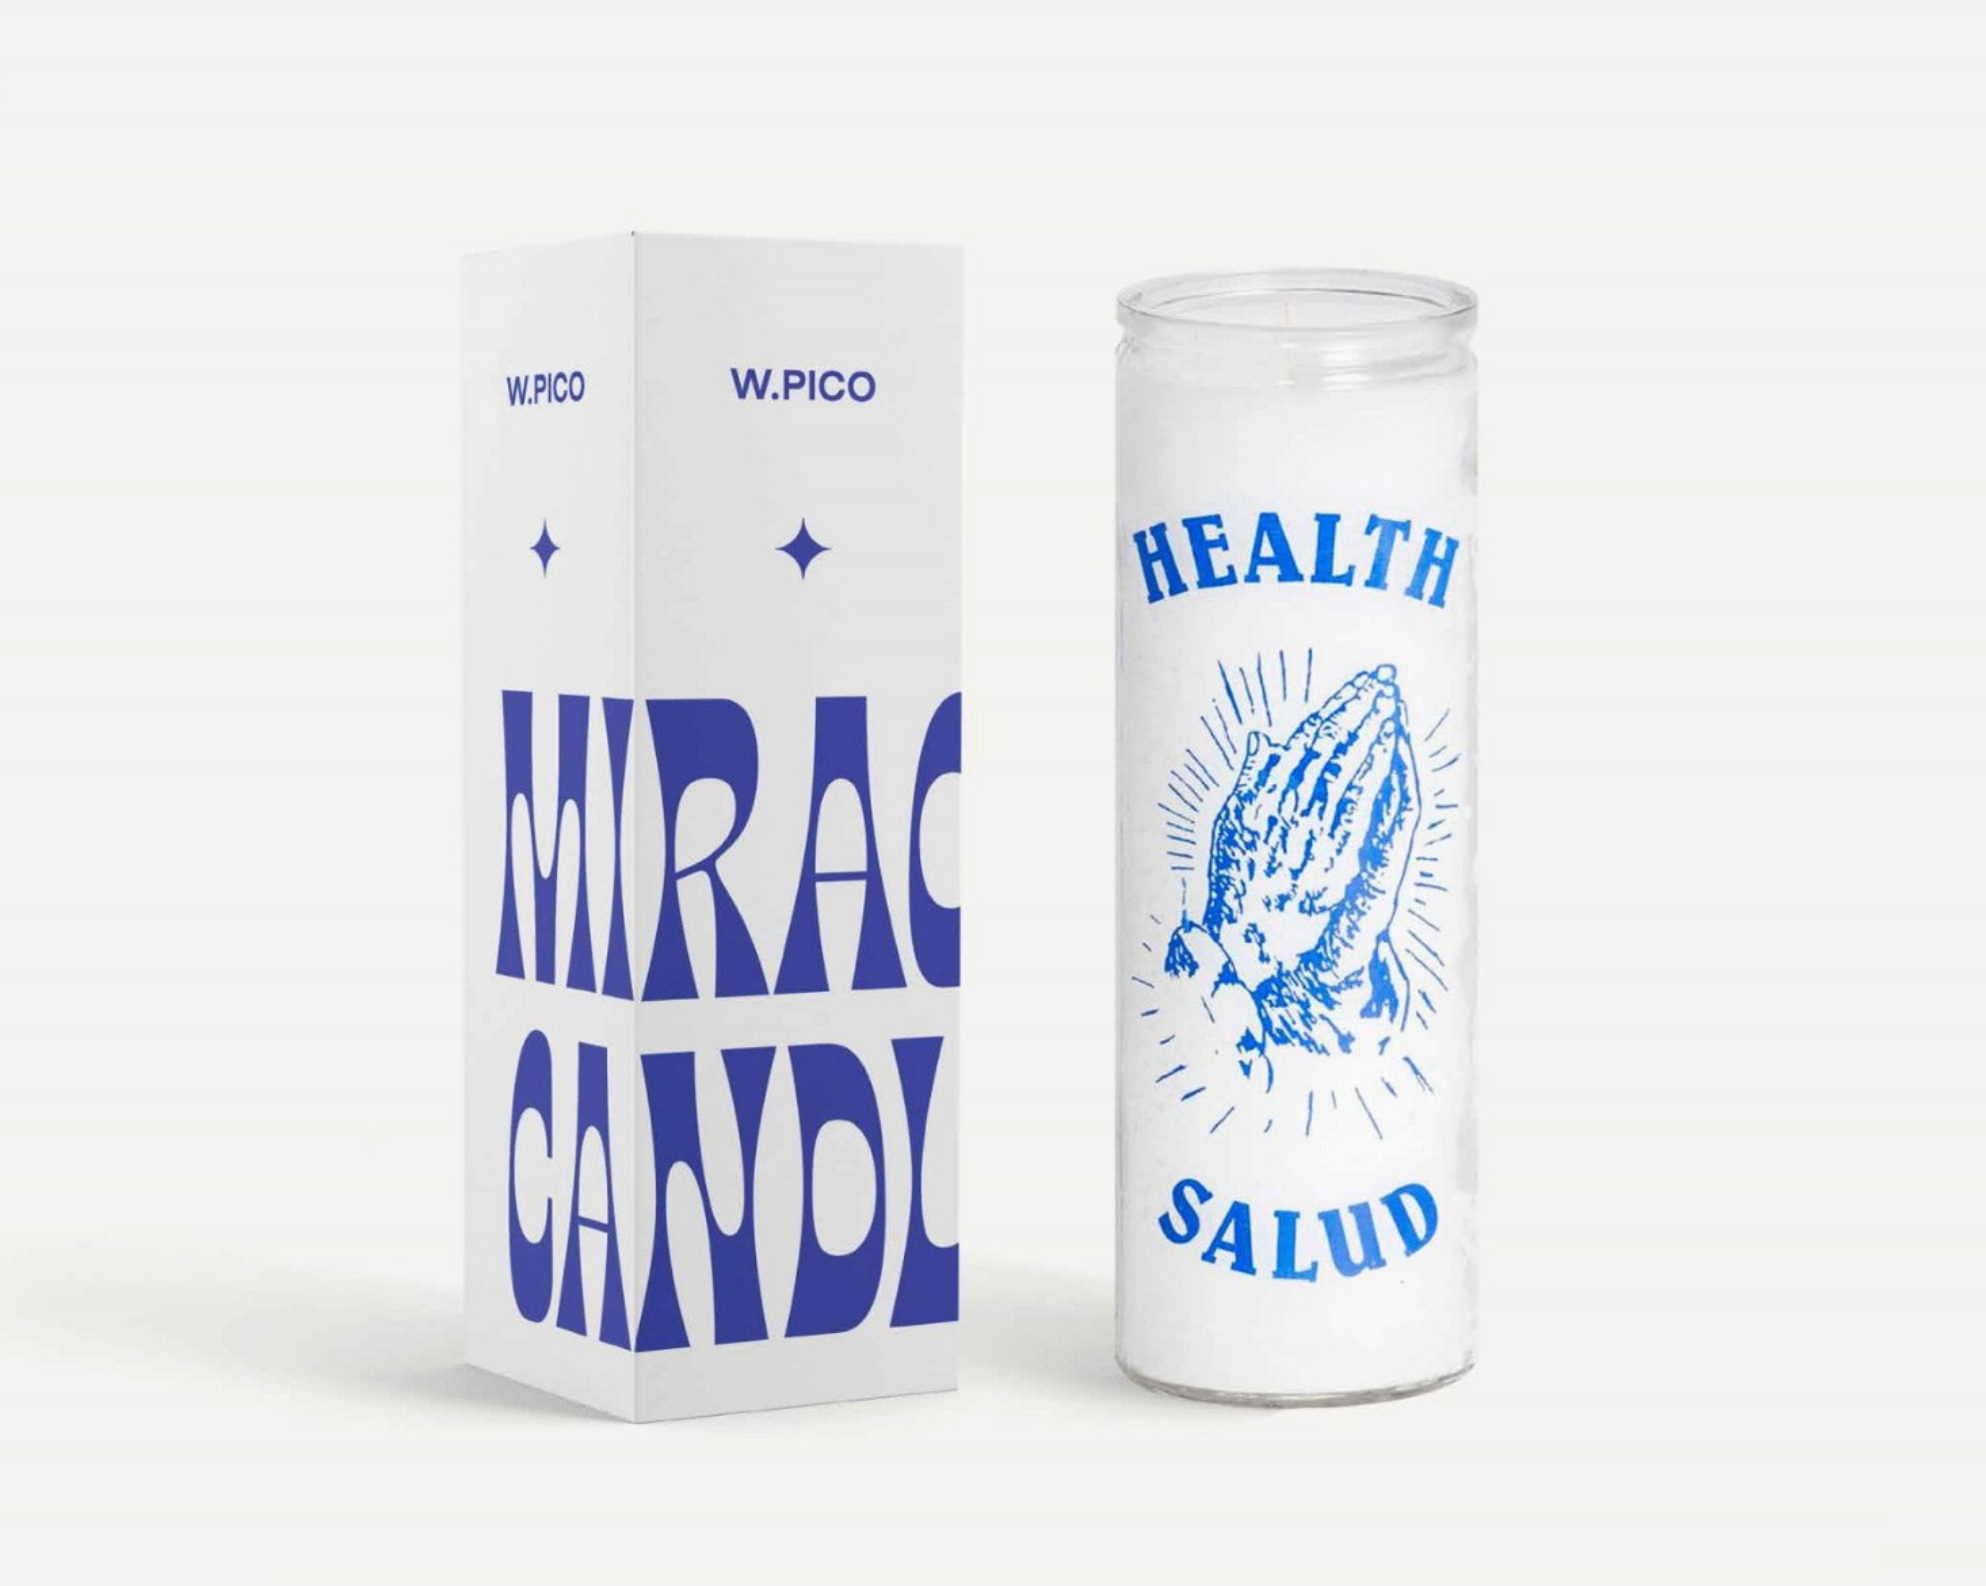 W PICO MIRACLE CANDLE - Health